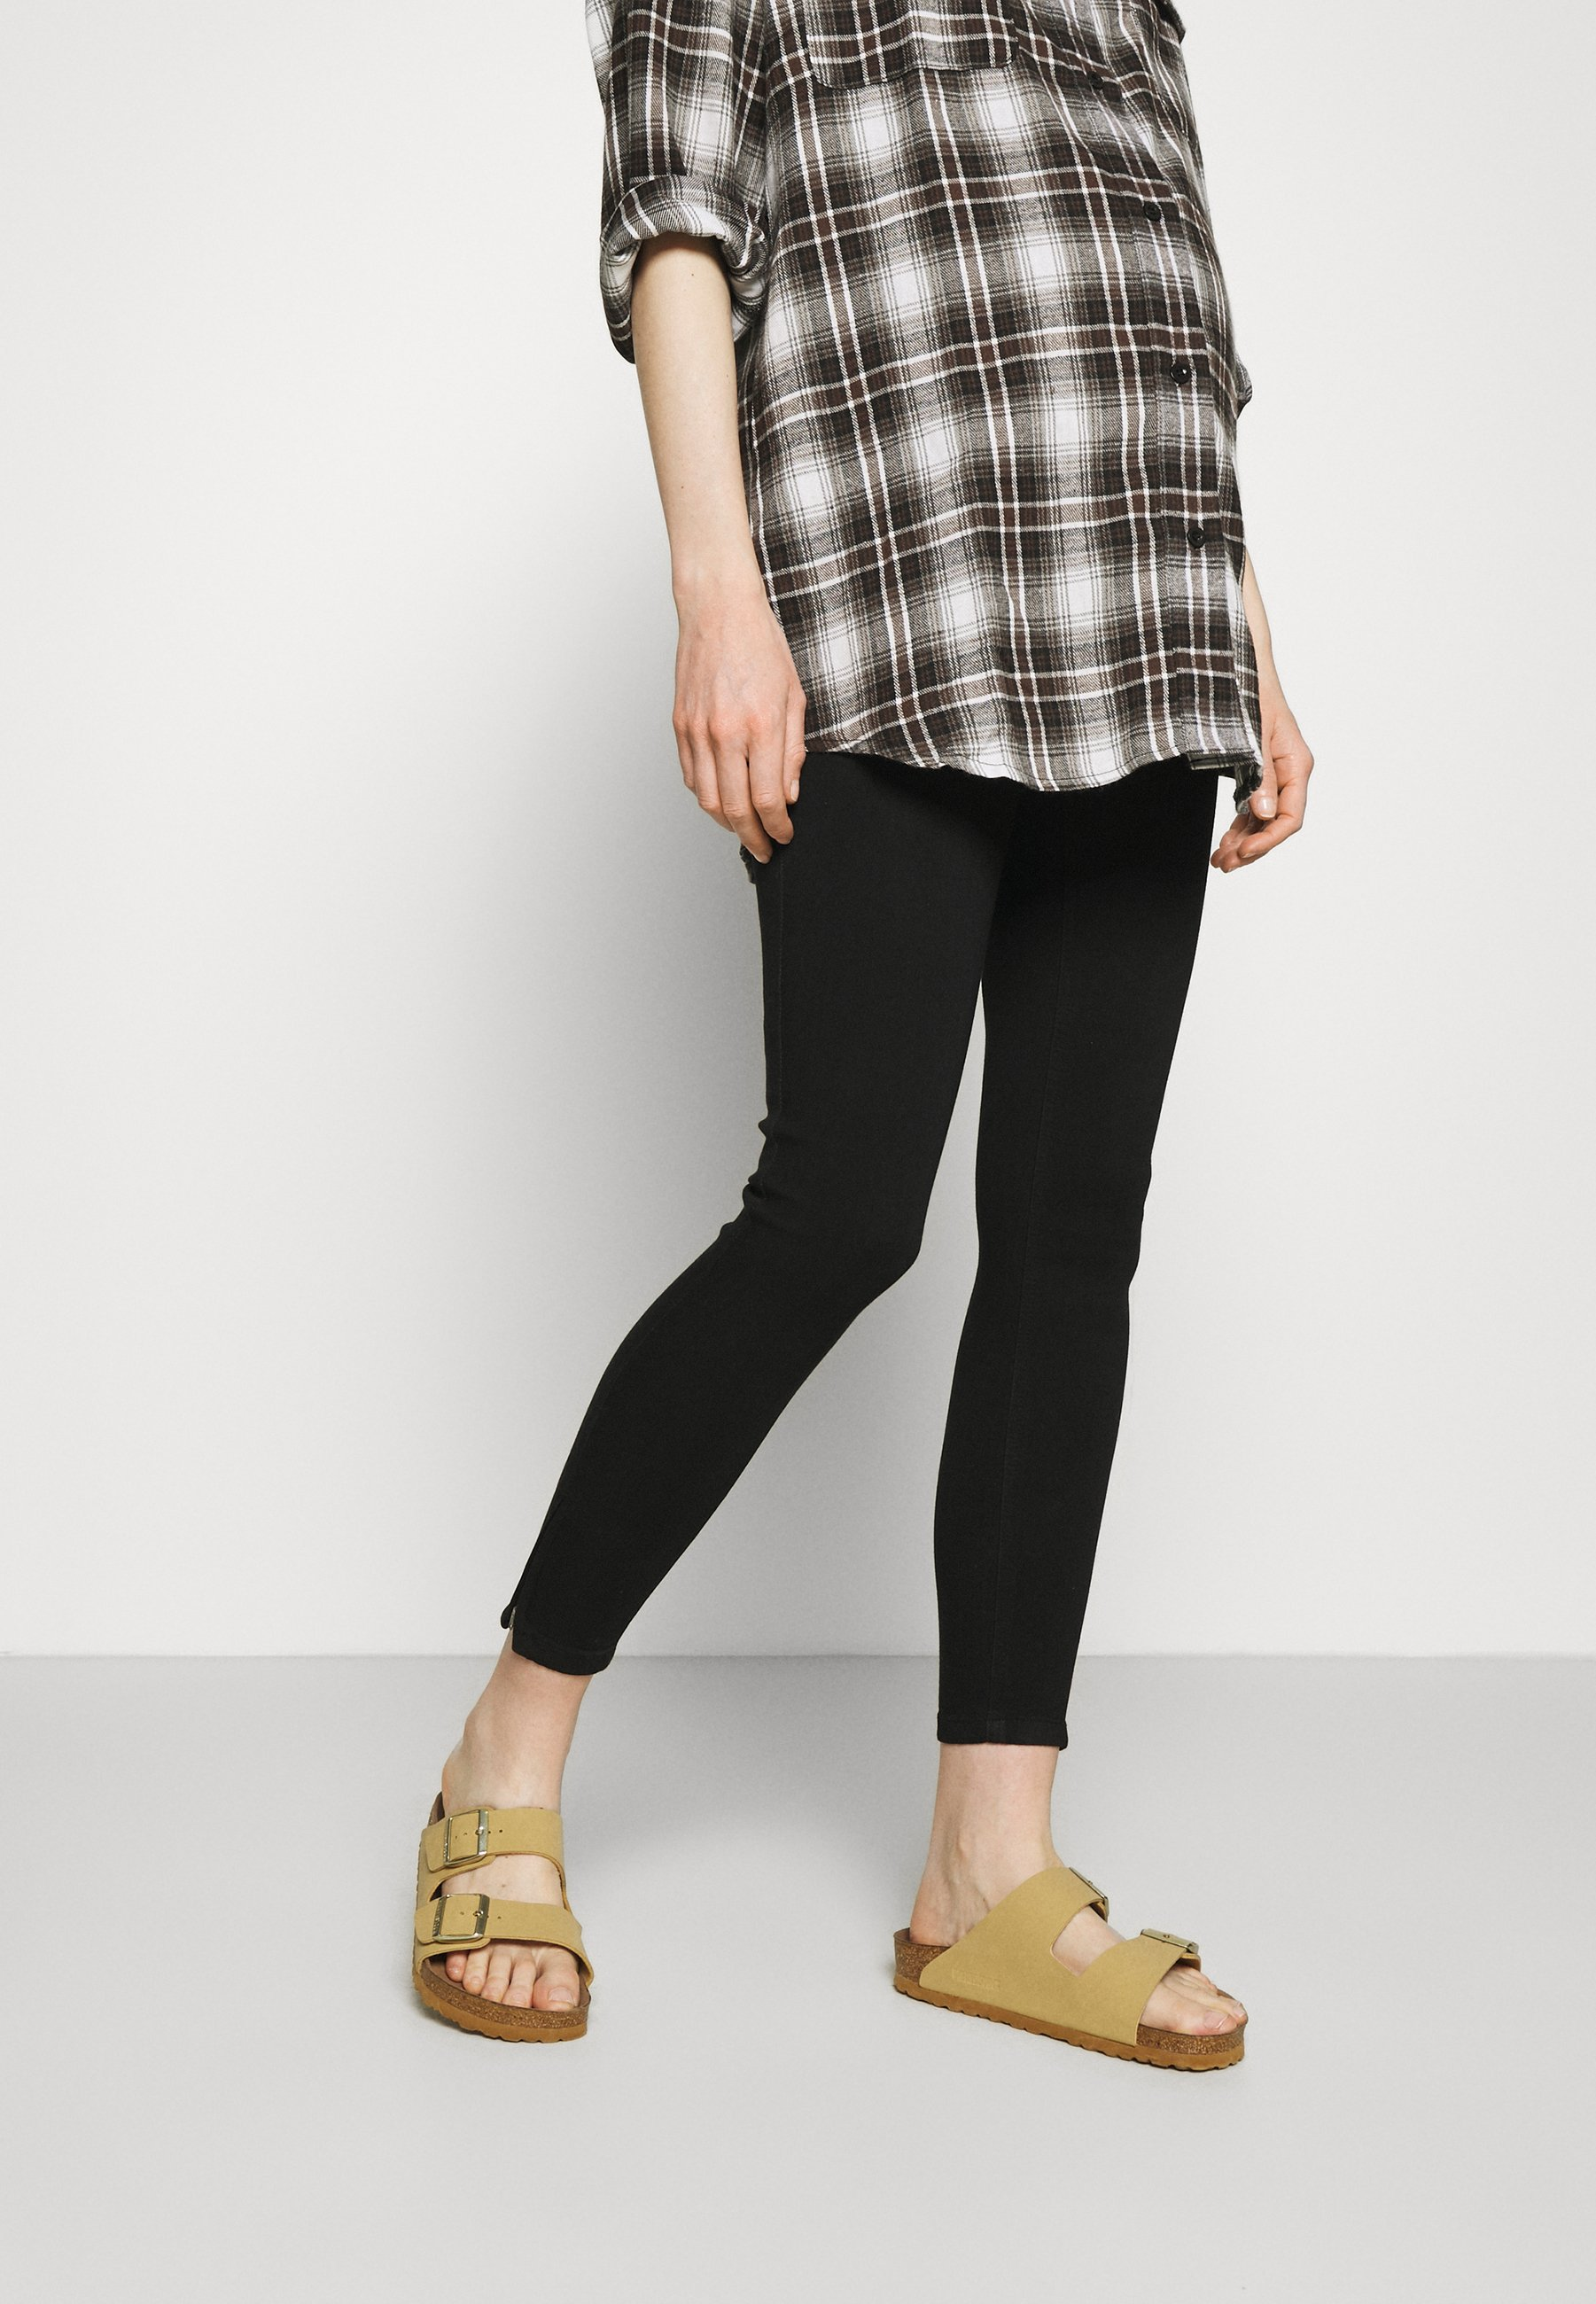 Donna OLMKENDELL ETERNAL LIFE - Jeans Skinny Fit